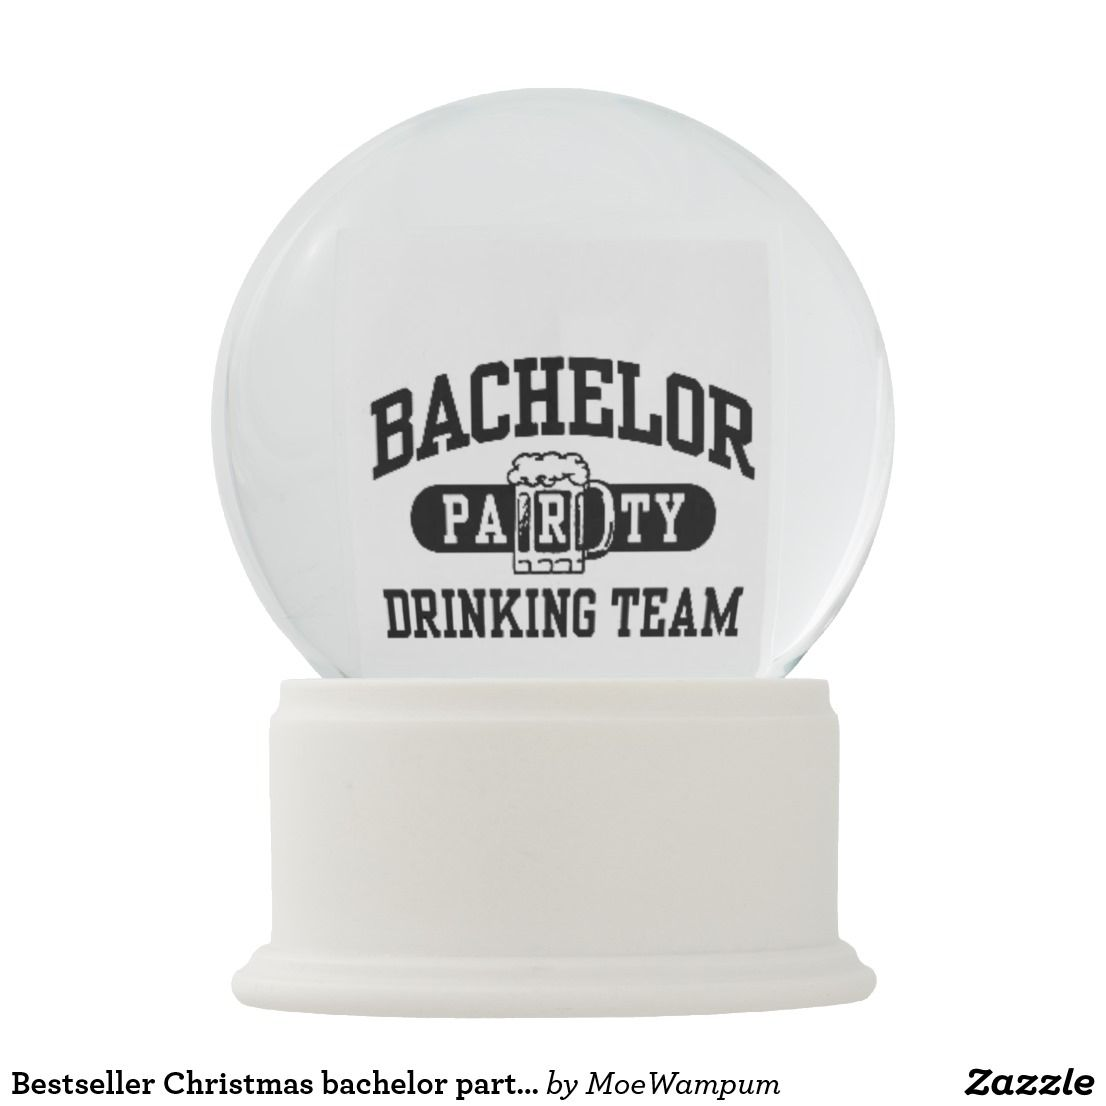 Bestseller Christmas Bachelor Party Snow Globe Gifts For Wedding Party Bachelor Party Decorations Party Decoration Supplies